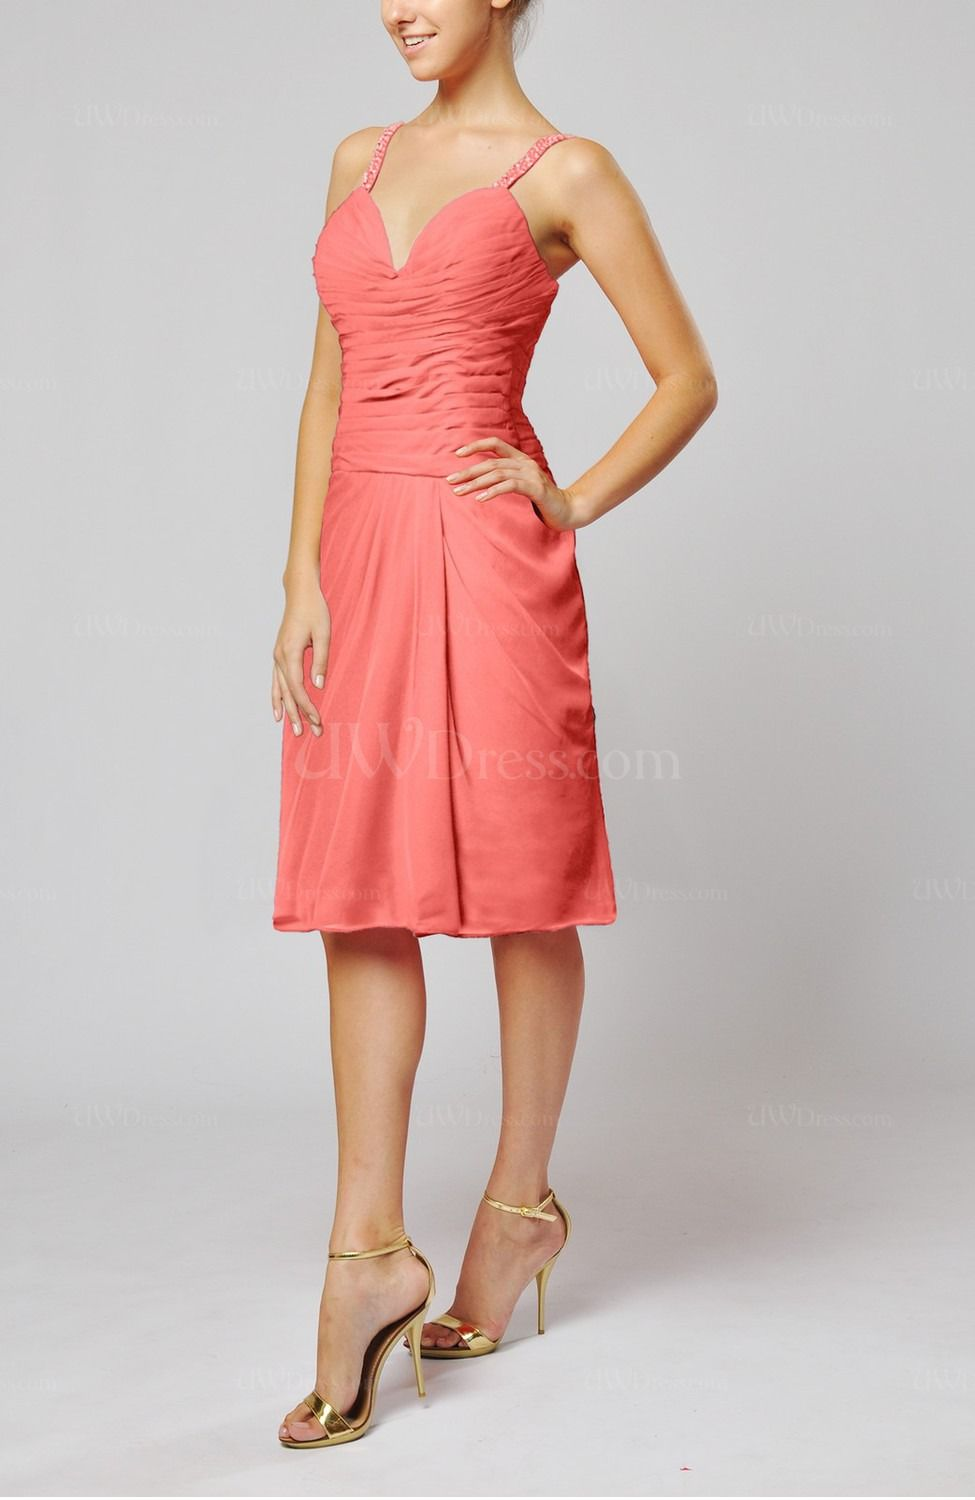 Coral plain sleeveless backless chiffon ruching wedding guest